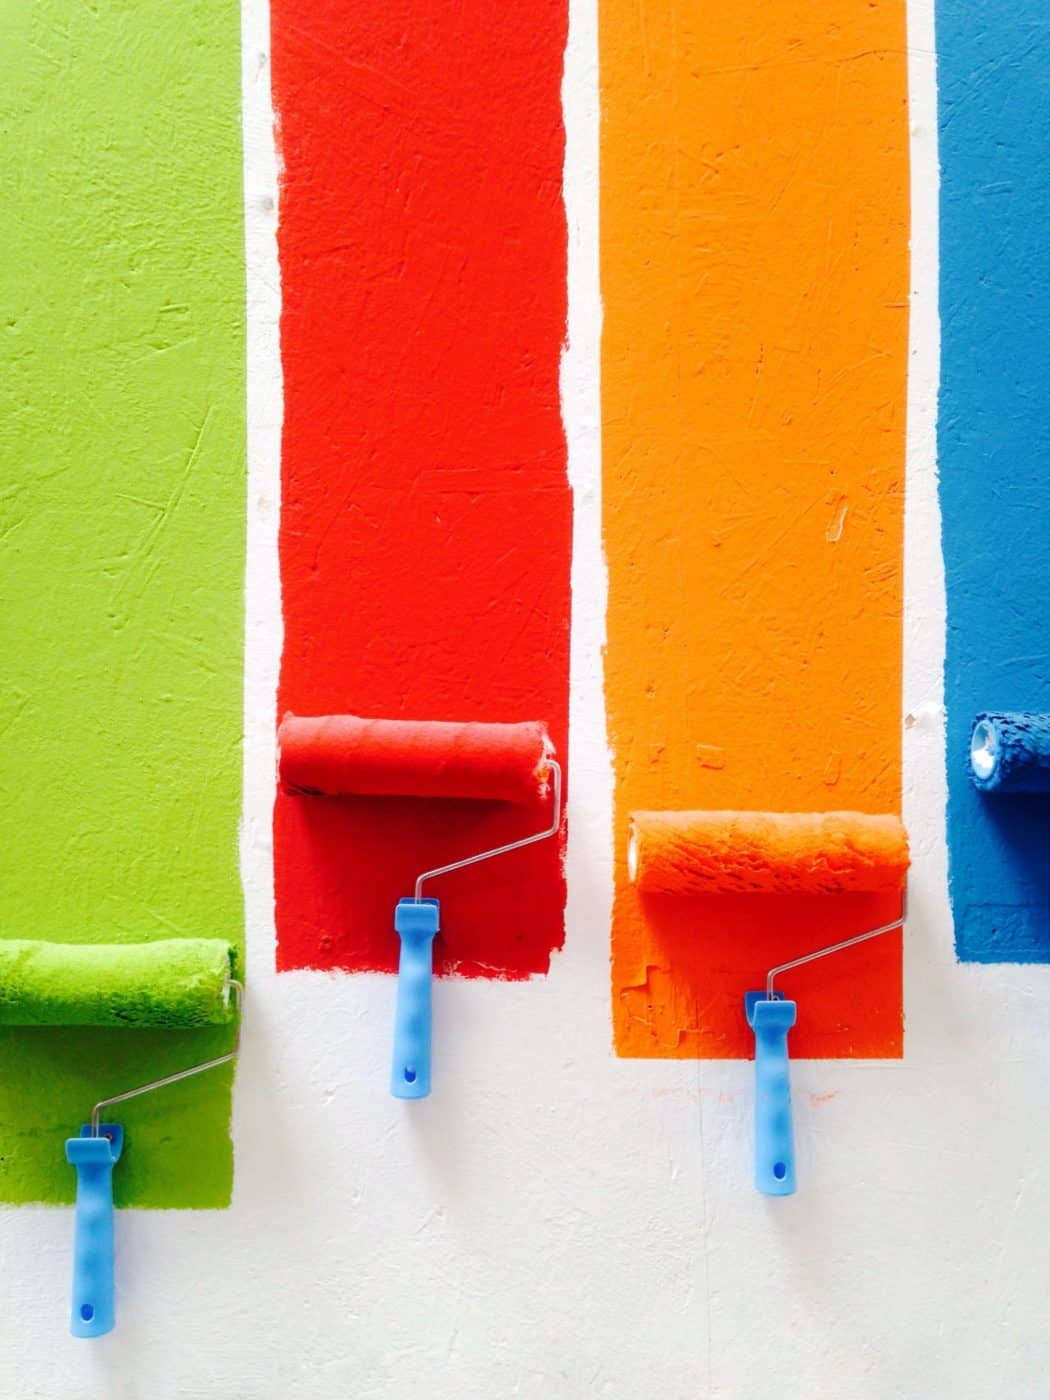 multiple colored paint rollers on a wall painting a room